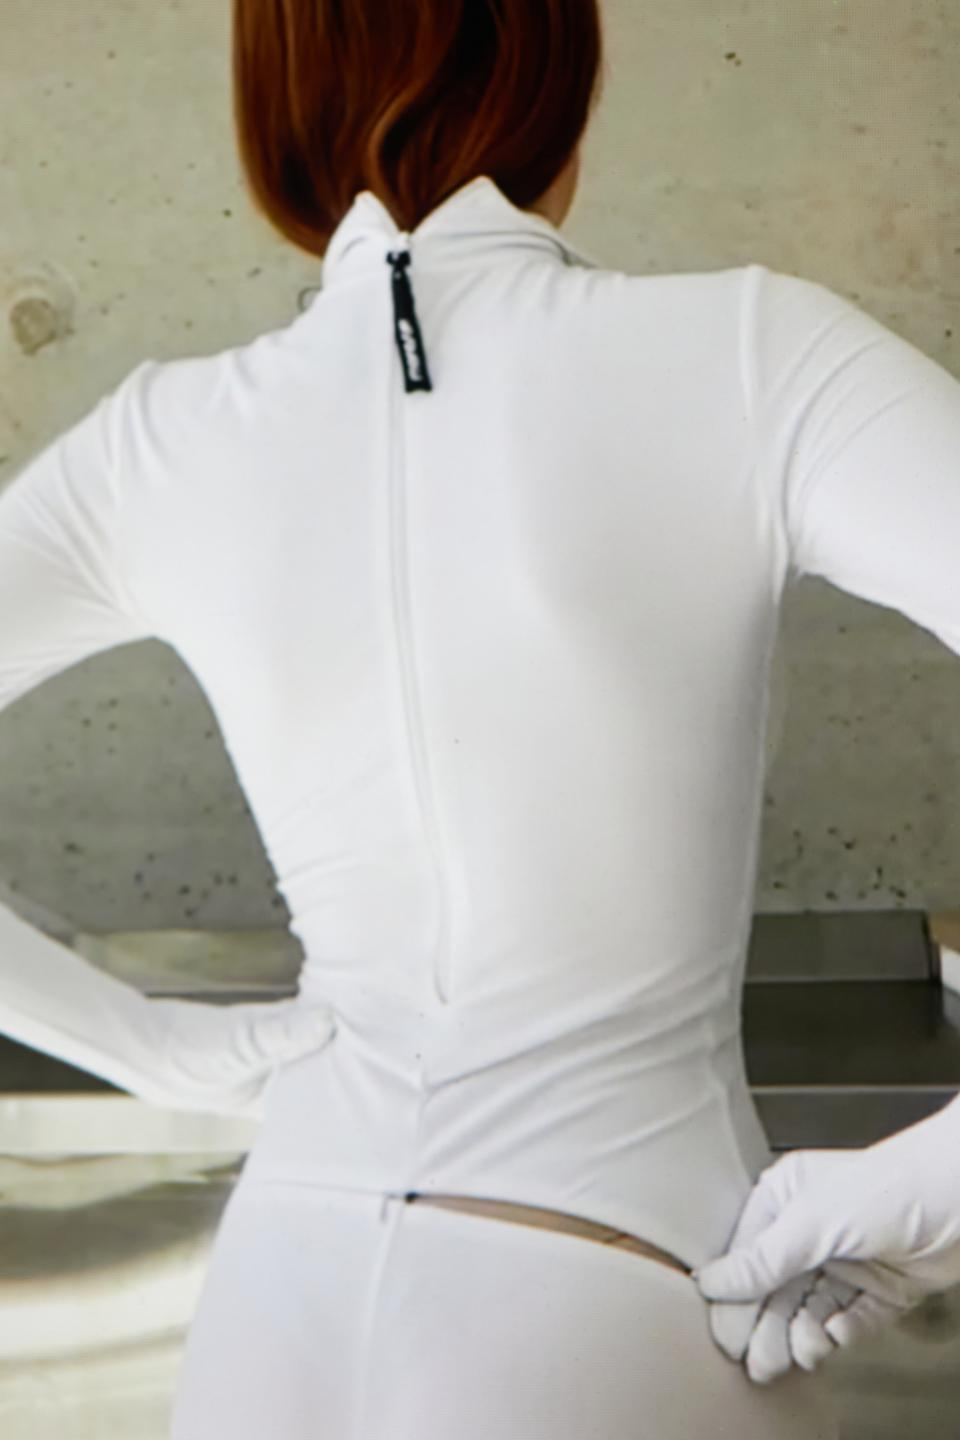 Second Skin by Monosuit also features patented secret zippers